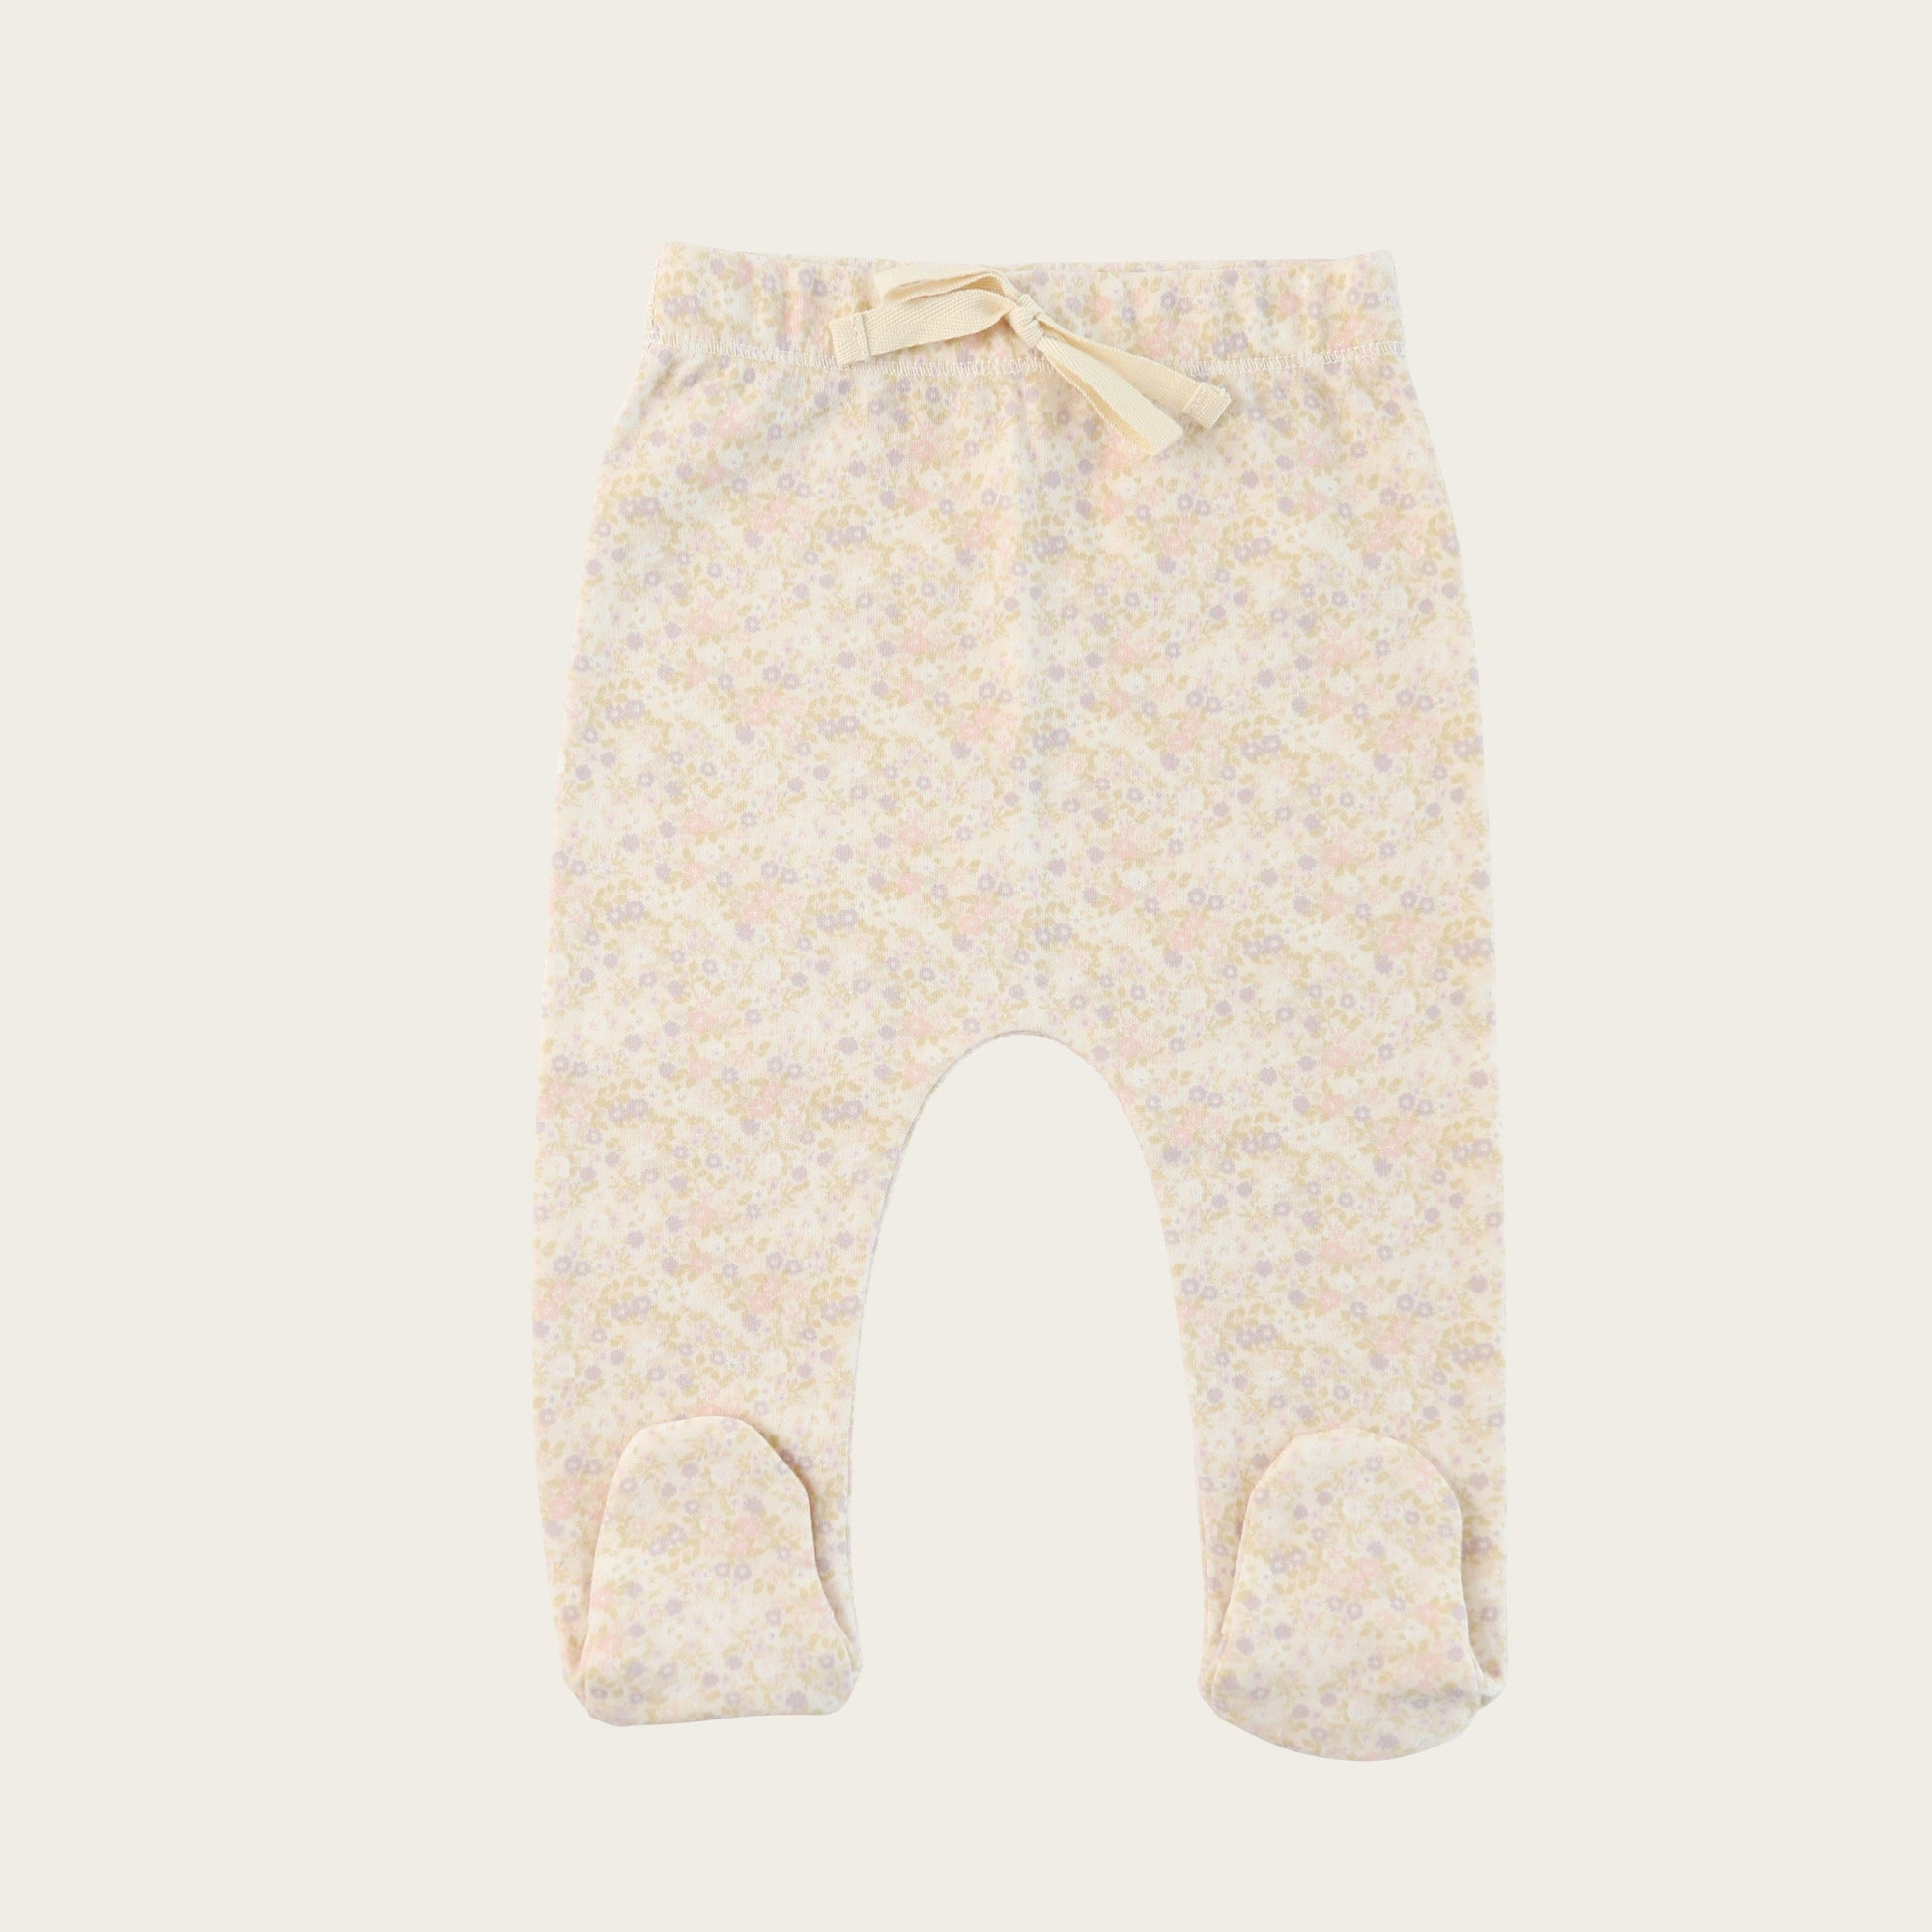 Forget Me Not Footed Pant